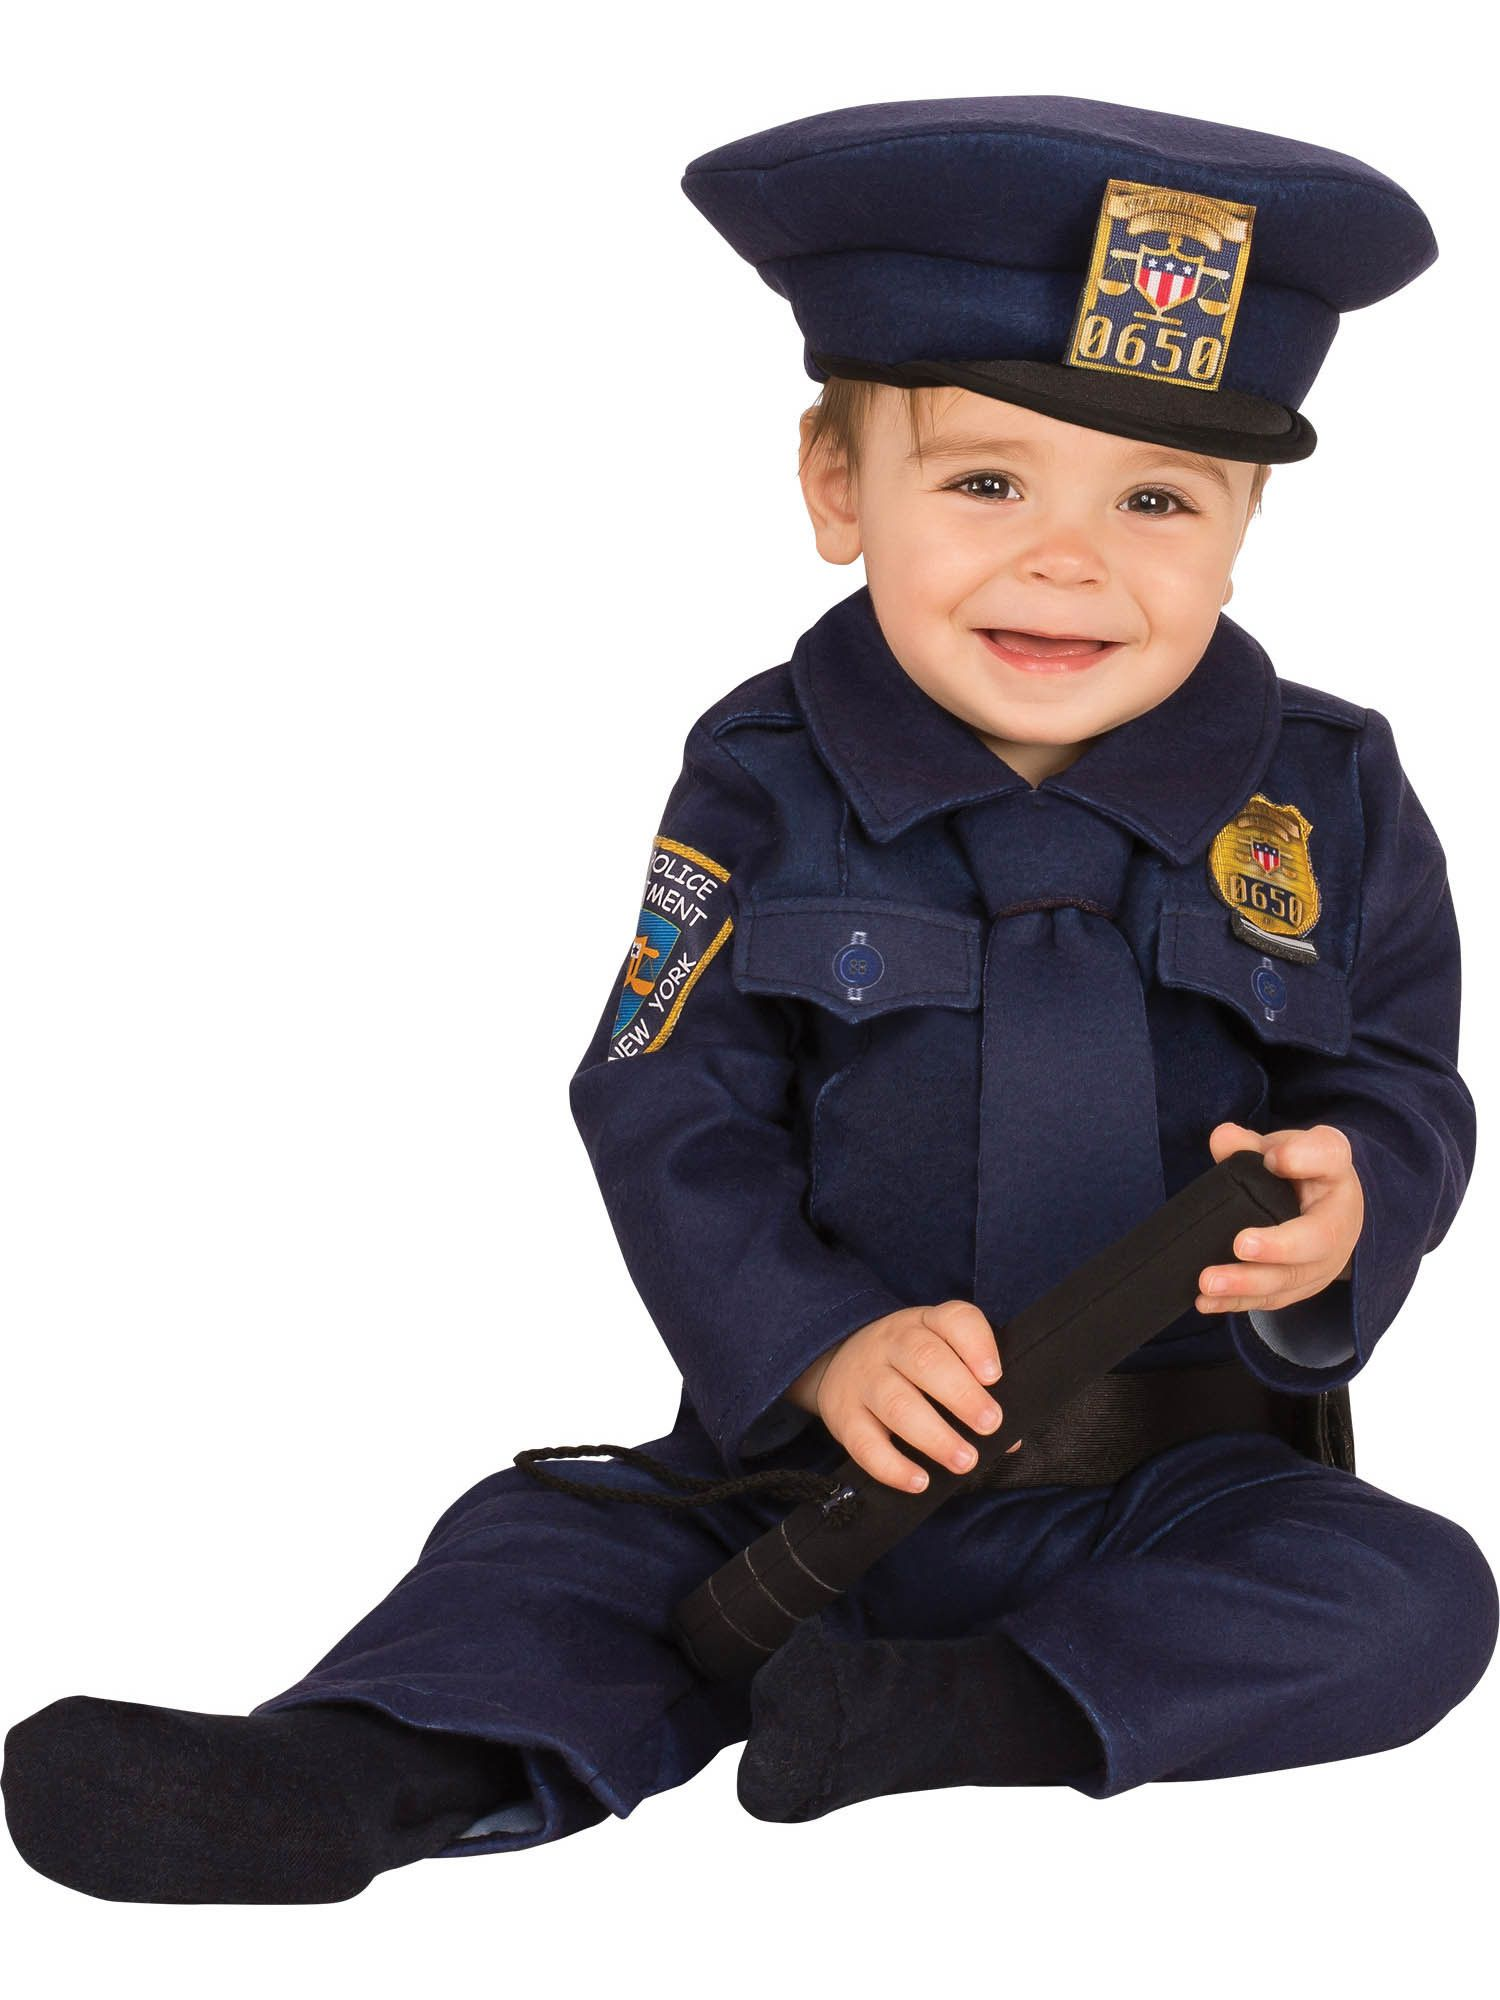 d84f5f57ec8 Police Baby/Toddler Costume - Baby/Toddler Costumes for 2018 ...